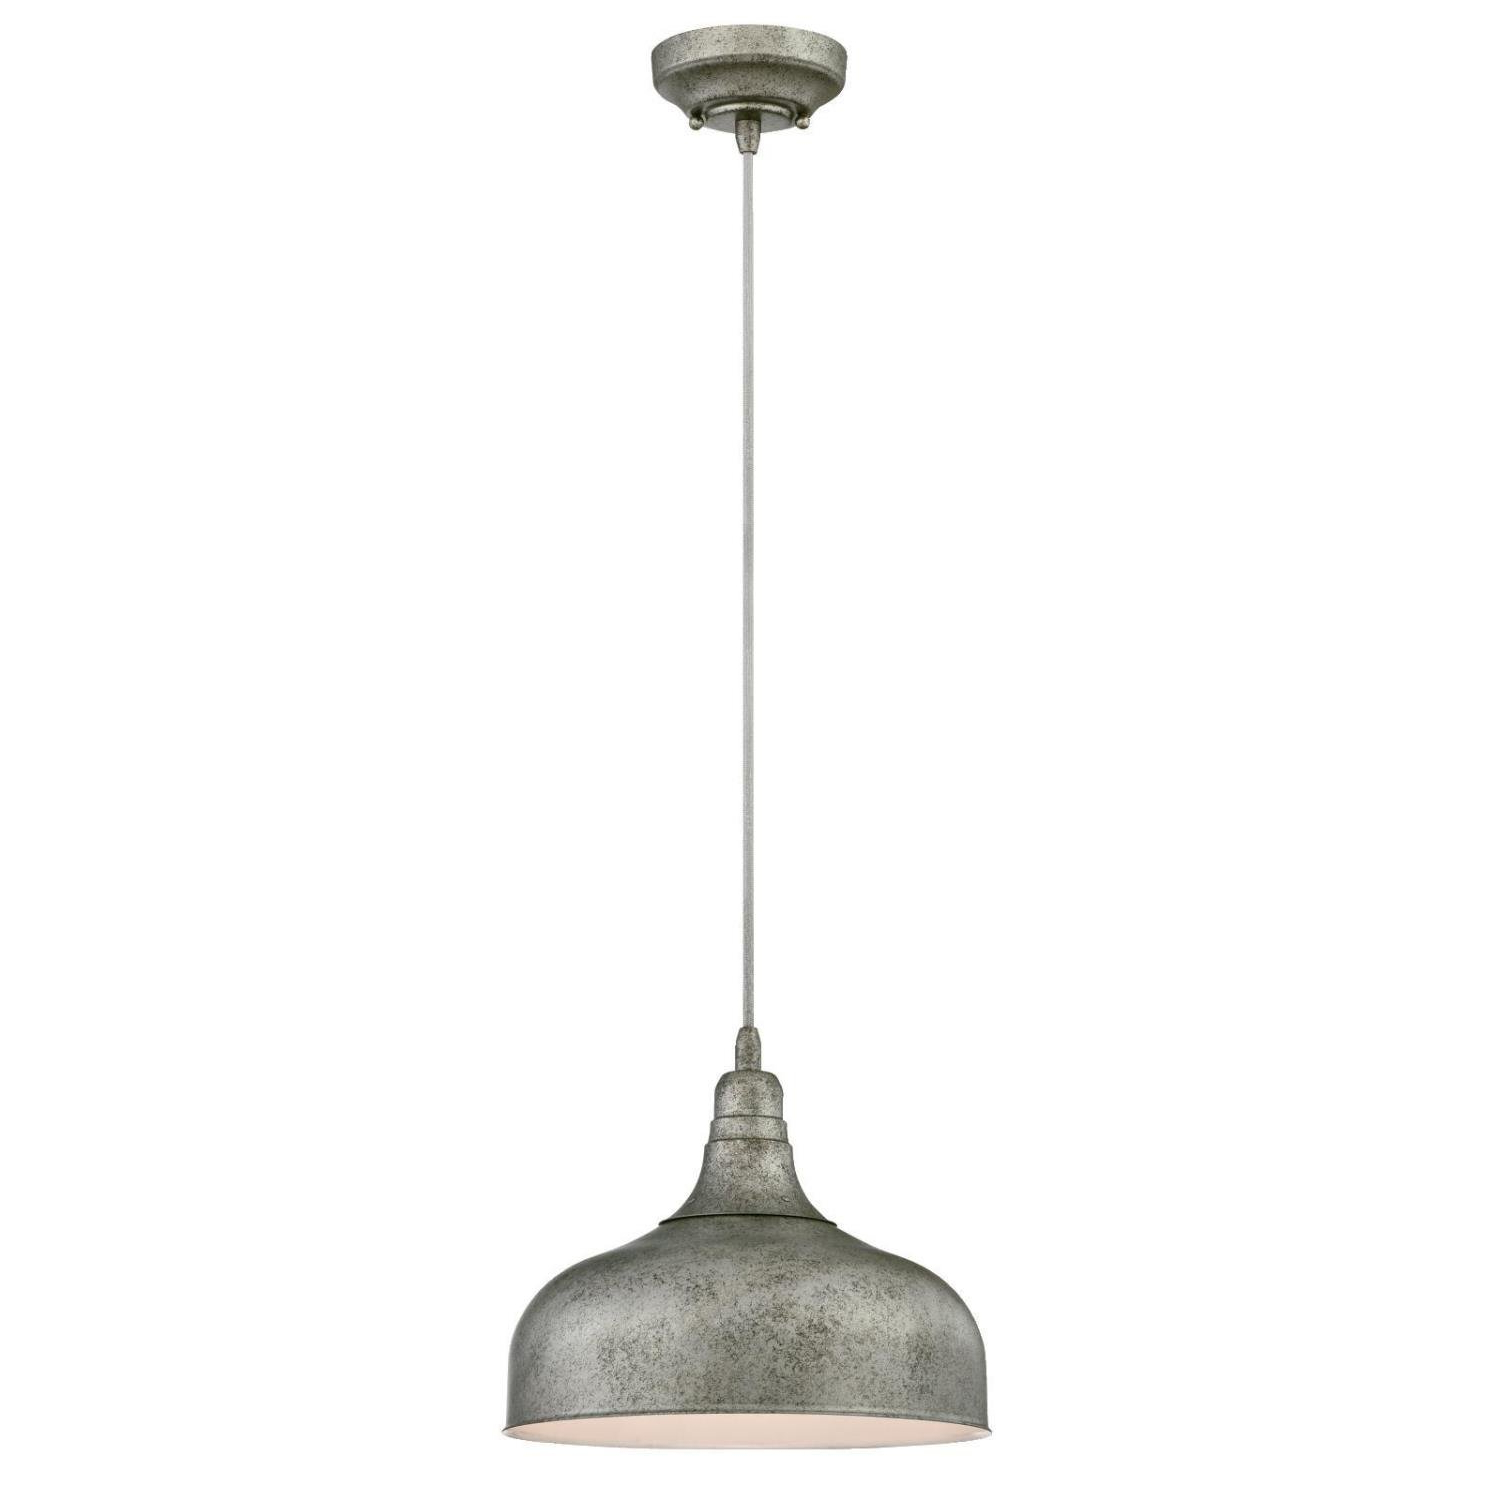 Famous Gracie Oaks Burwan 1 Light Dome Pendant Within Amara 3 Light Dome Pendants (View 19 of 25)